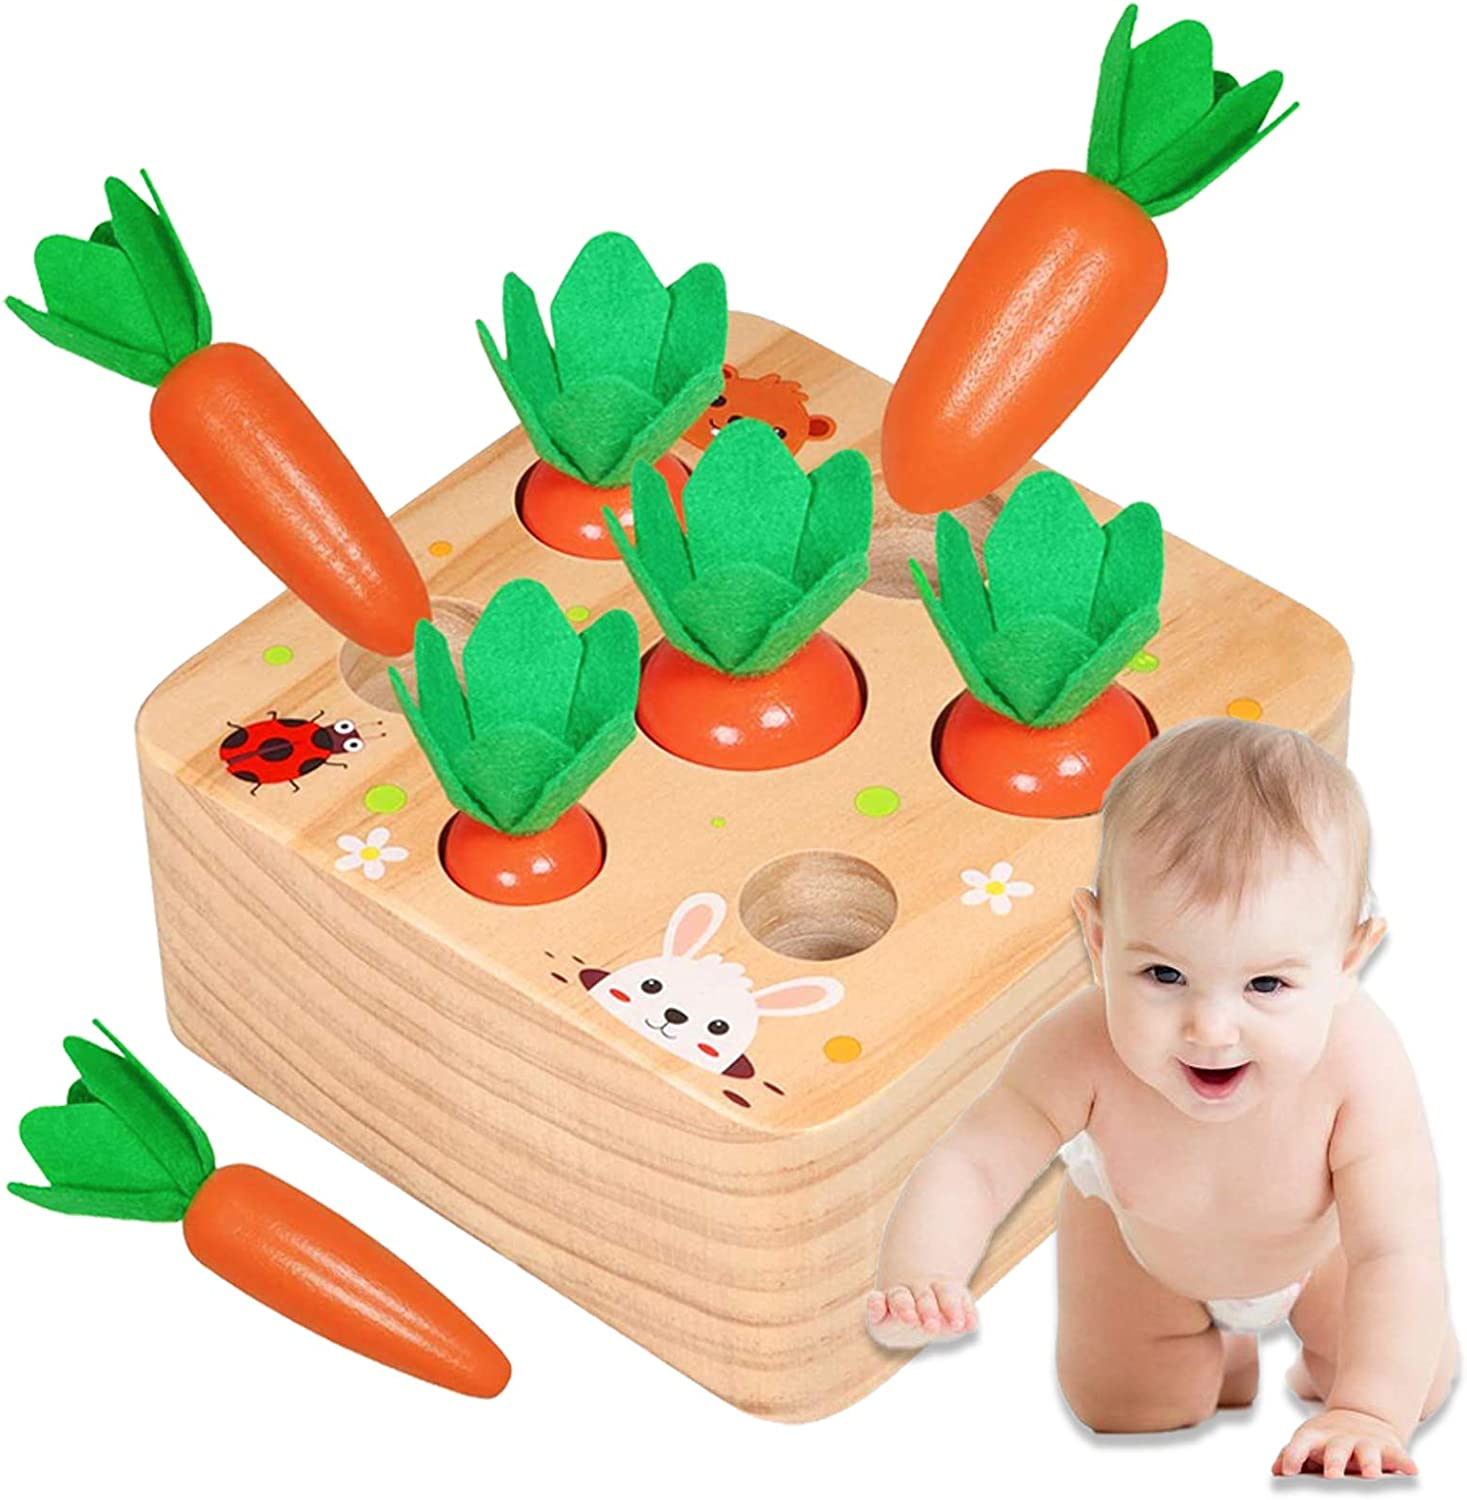 Faeny Montessori Toys for 1 Year Old, Wooden Baby Carrots Shape Size Sorting Game for Toddlers, Preschool Learning Fine Motor Skill Development , Ideal for Boys/Girls